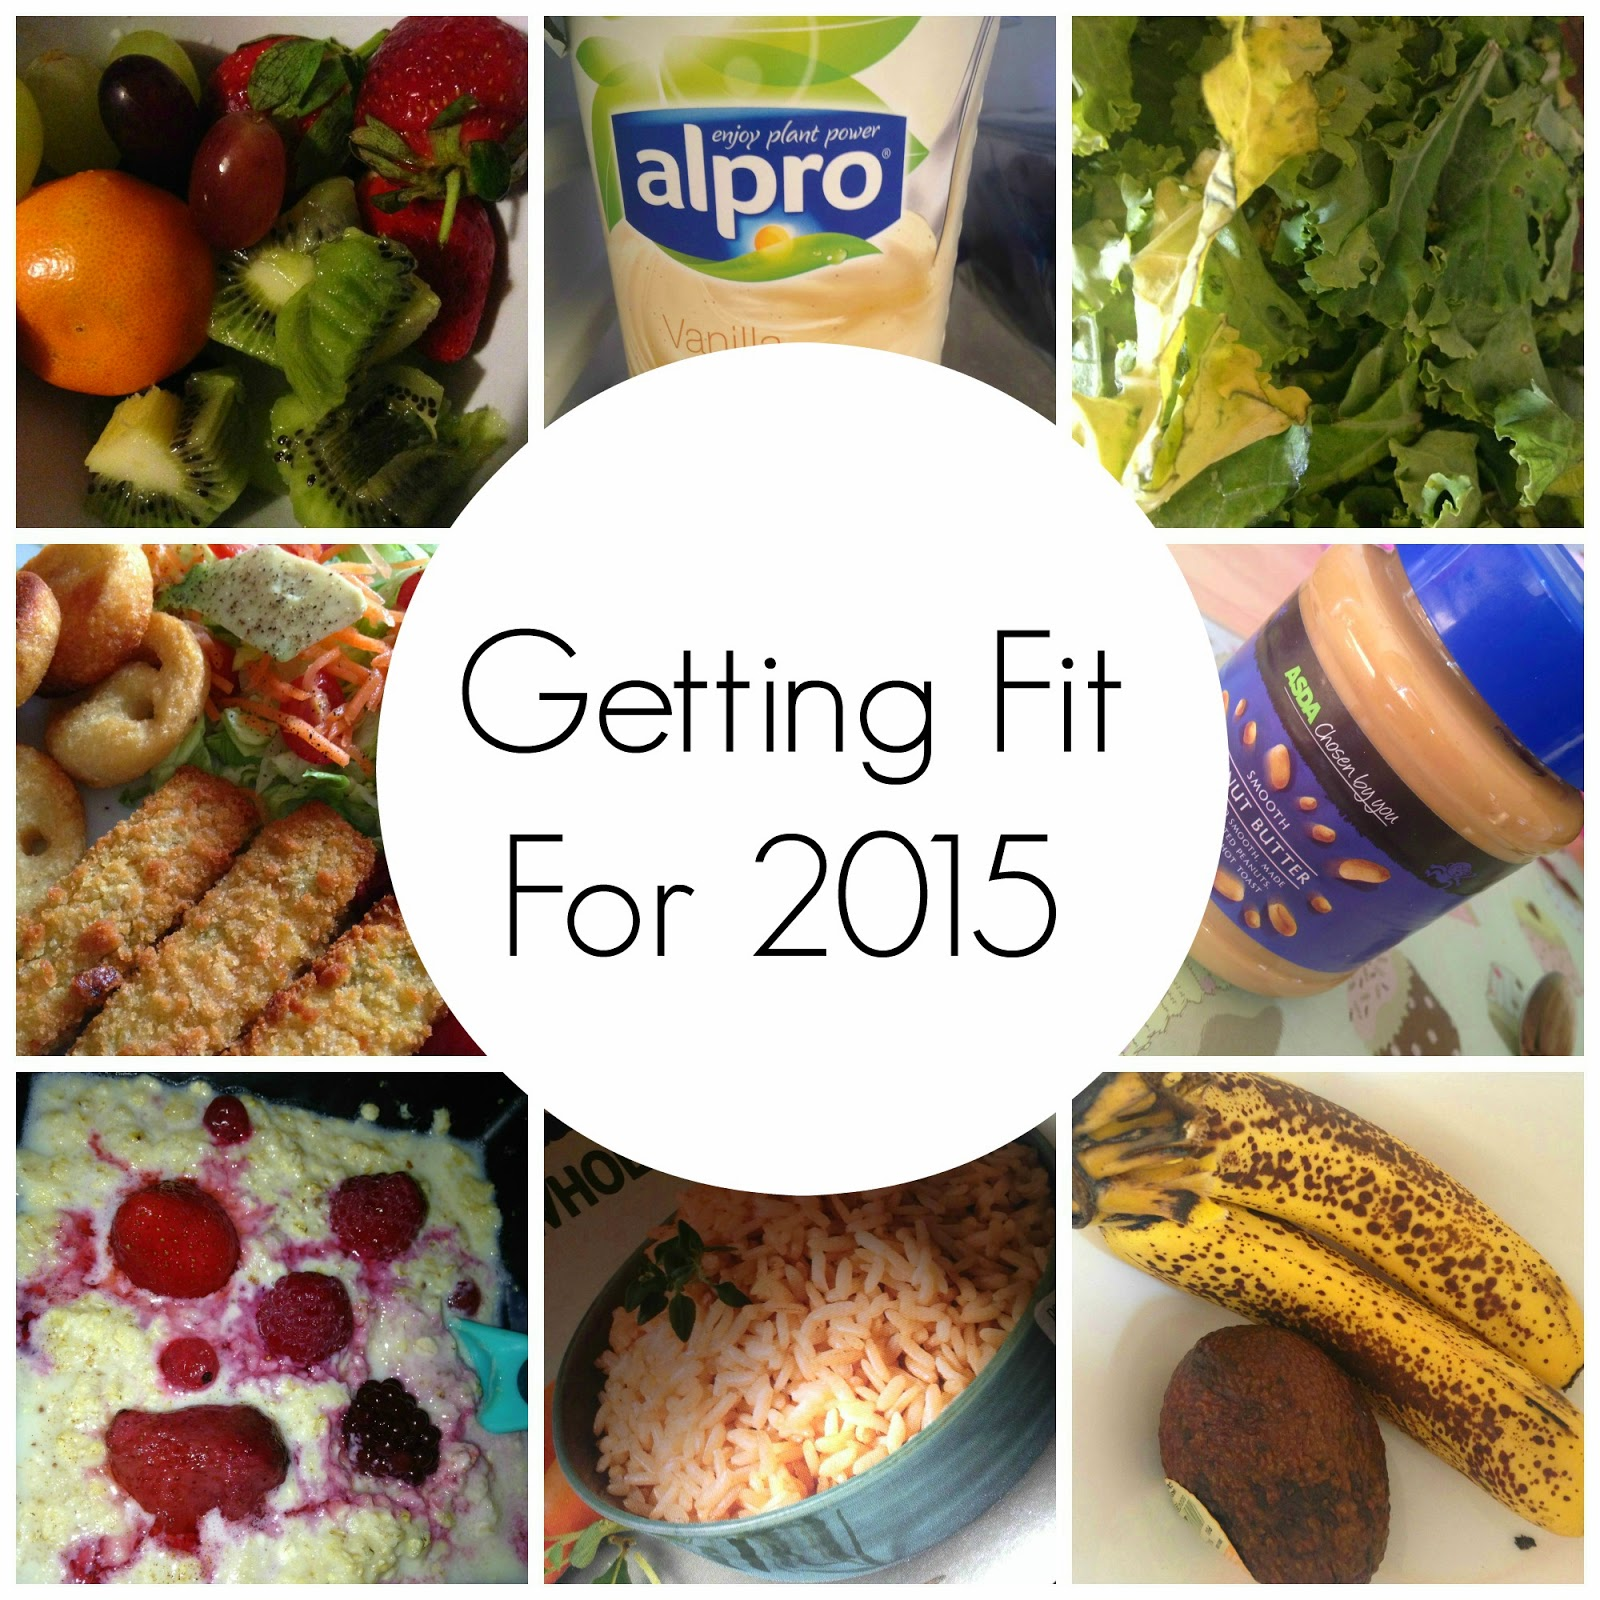 Getting fit for 2015